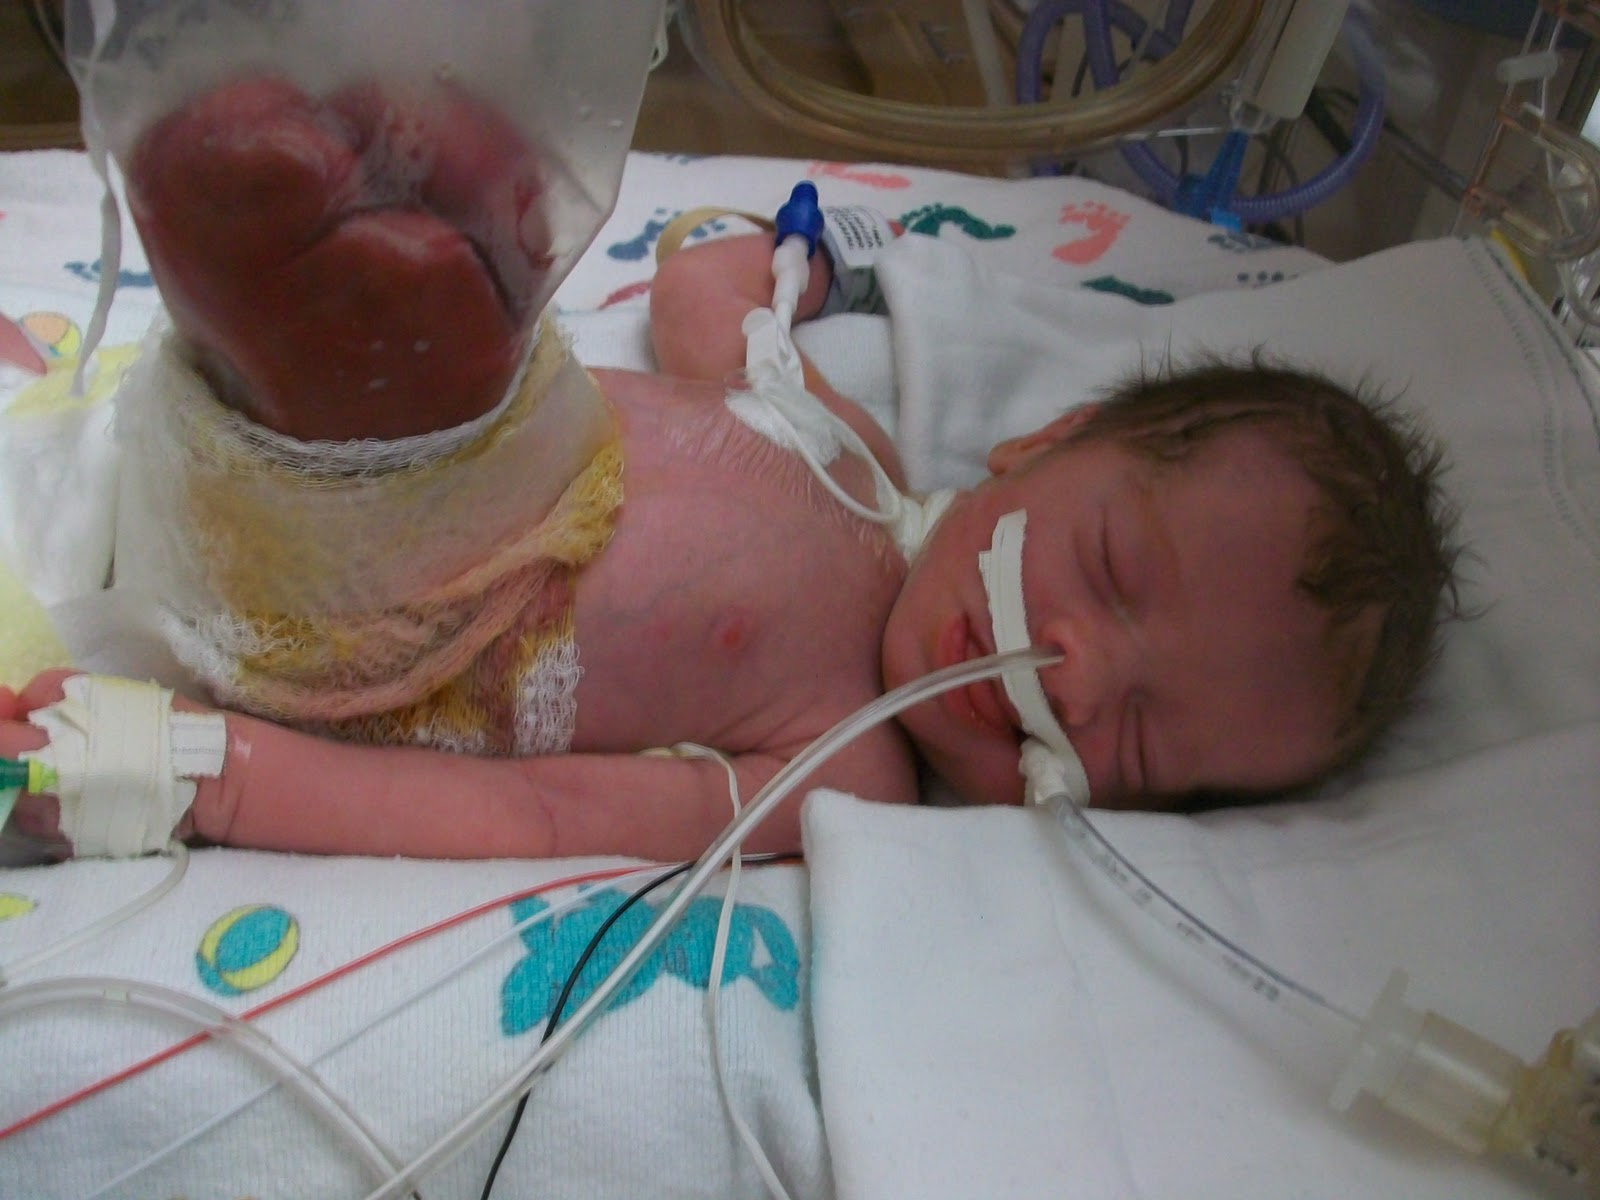 Gastroschisis silo pictures home.